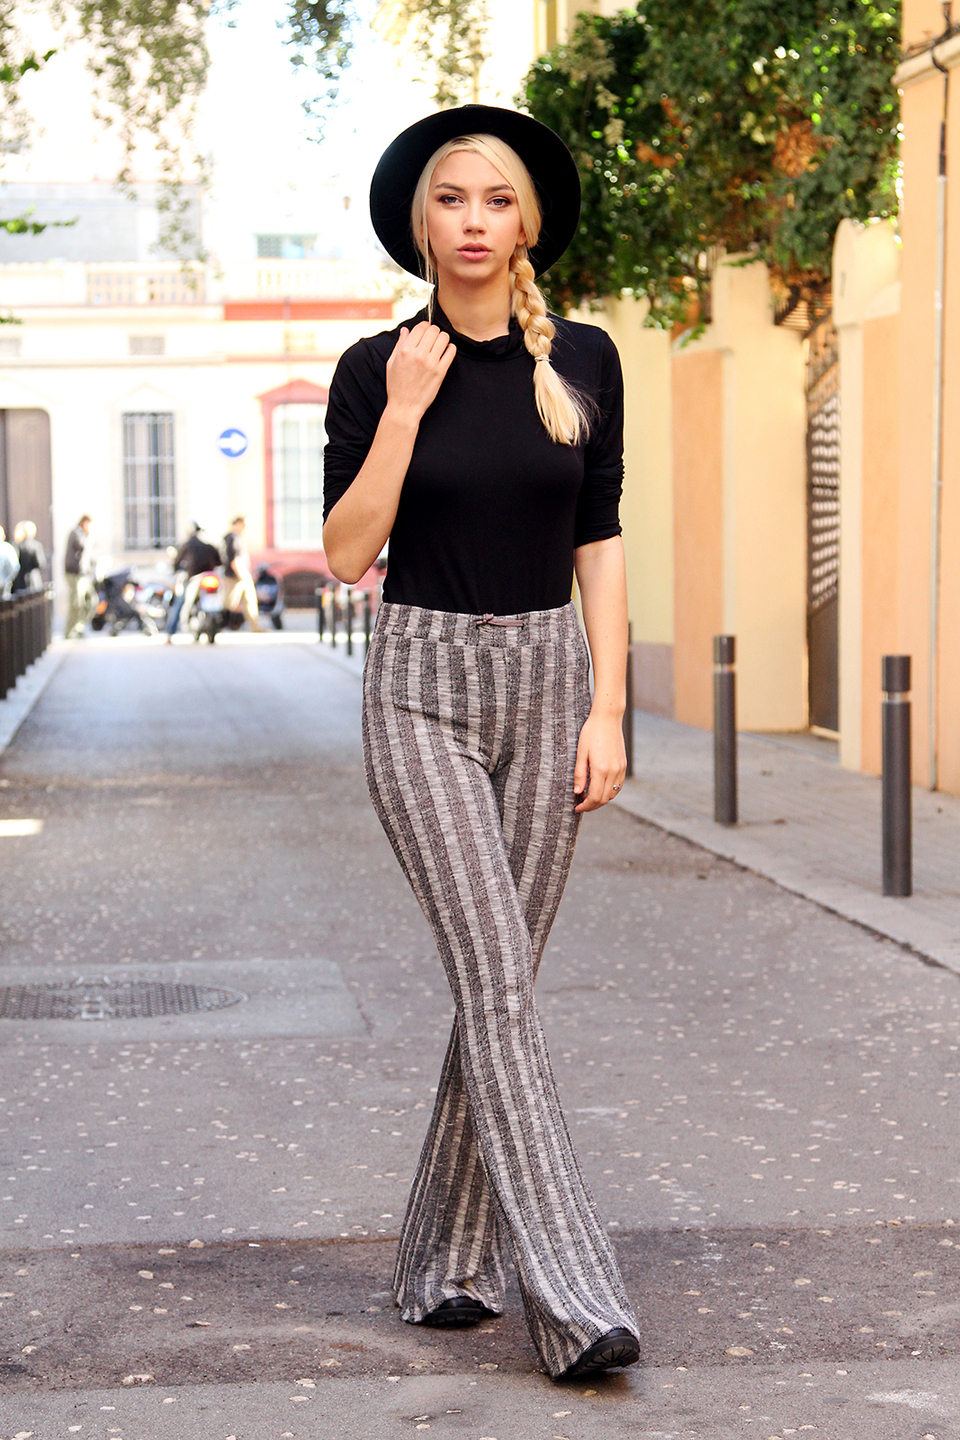 Luis-Lau-Fashion-Blonde-Blogger-barcelona_04_phixr